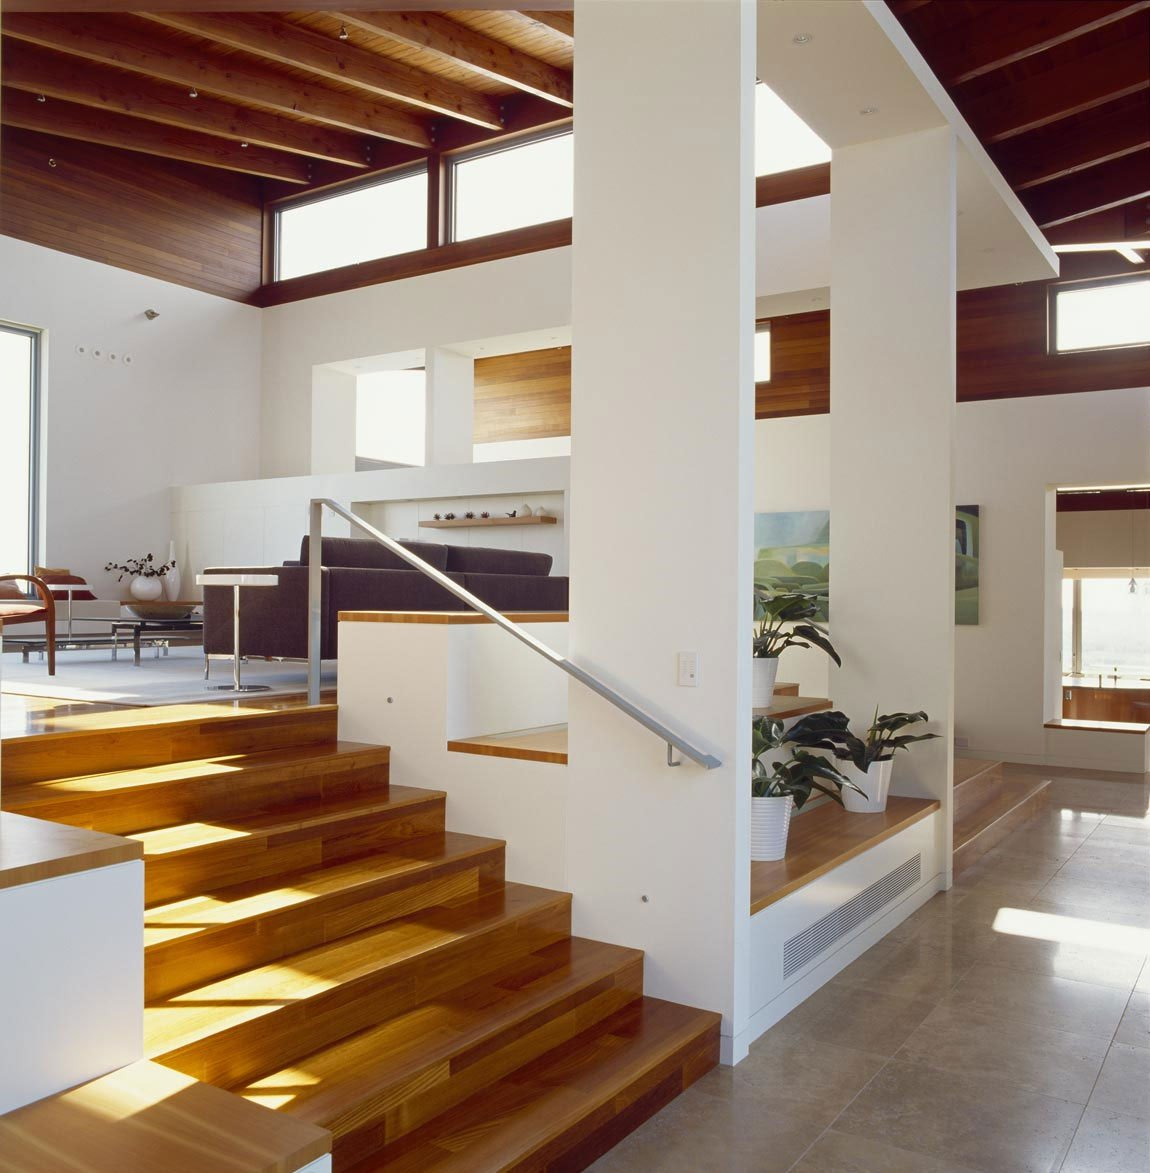 The-Hilltop-House-17